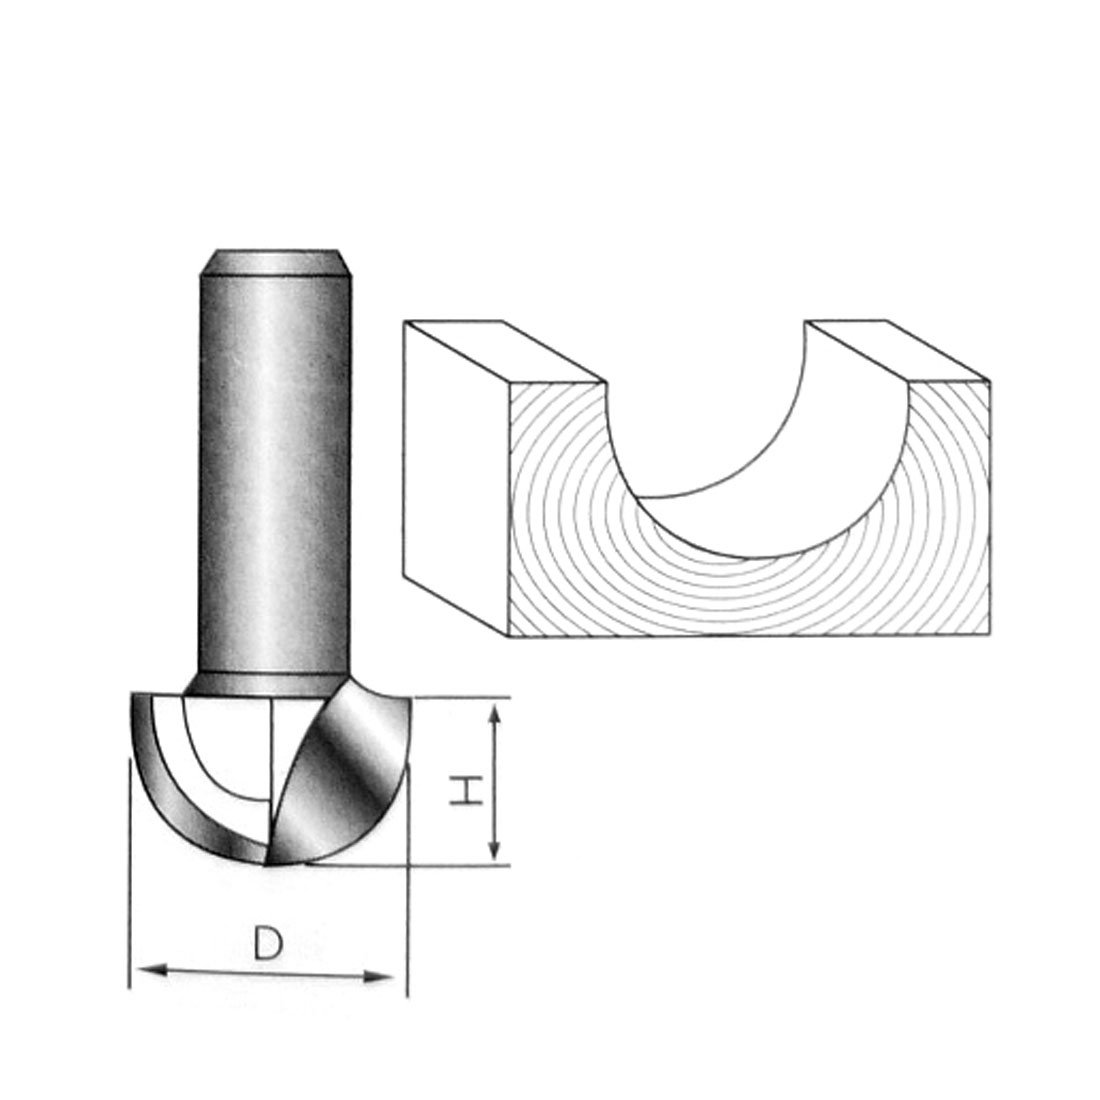 Uxcell a16042700ux0294 1//2 Inch x 1-1//2 Inch Woodworker Round Nose Cove Core Box Router Bit Wood Cutting Tool